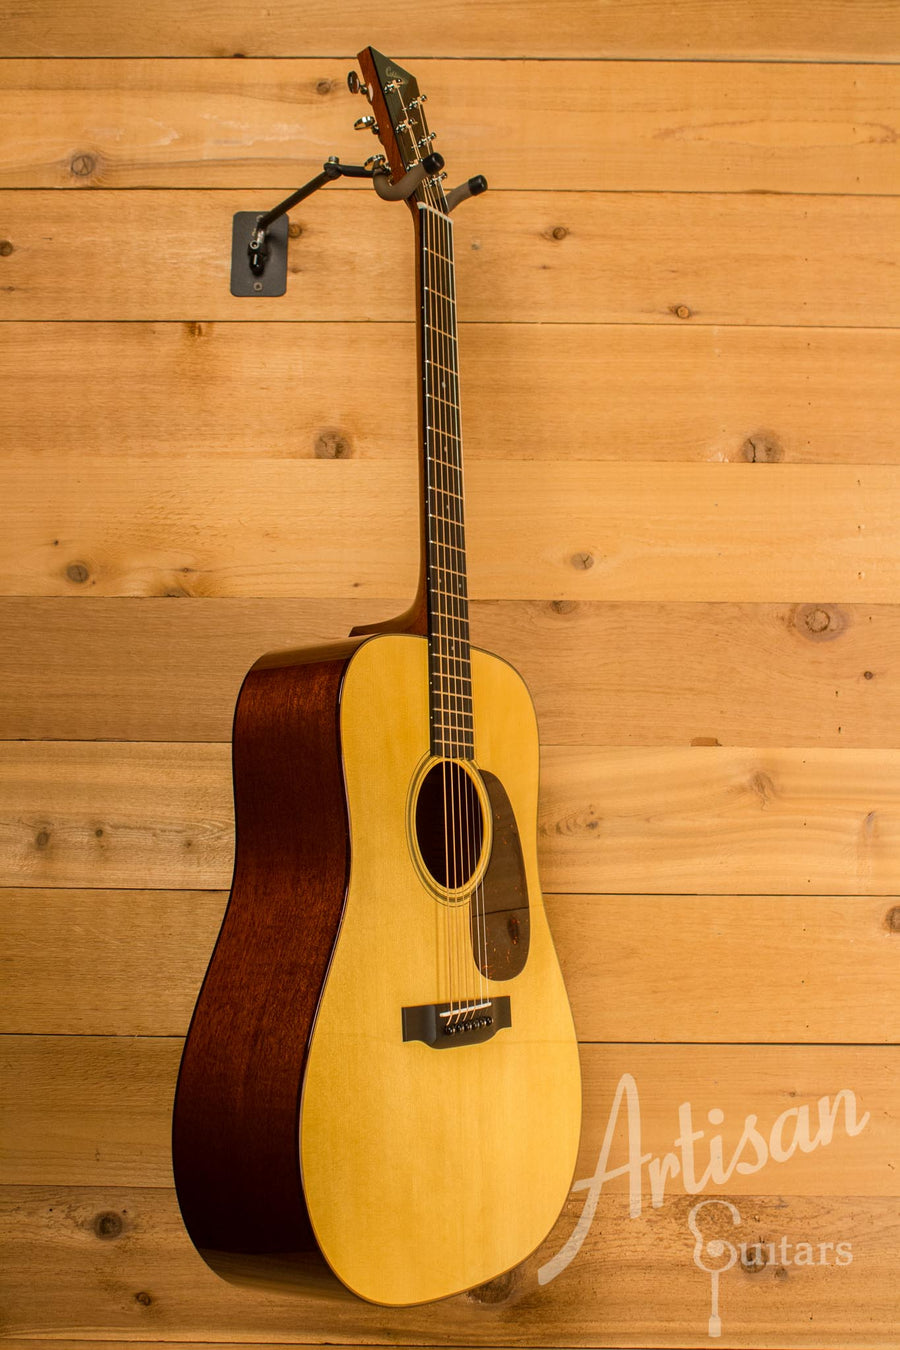 Collings D1A Guitar Varnish Adirondack and Mahogany No Tongue Brace Pre-Owned 2014 ID-10674